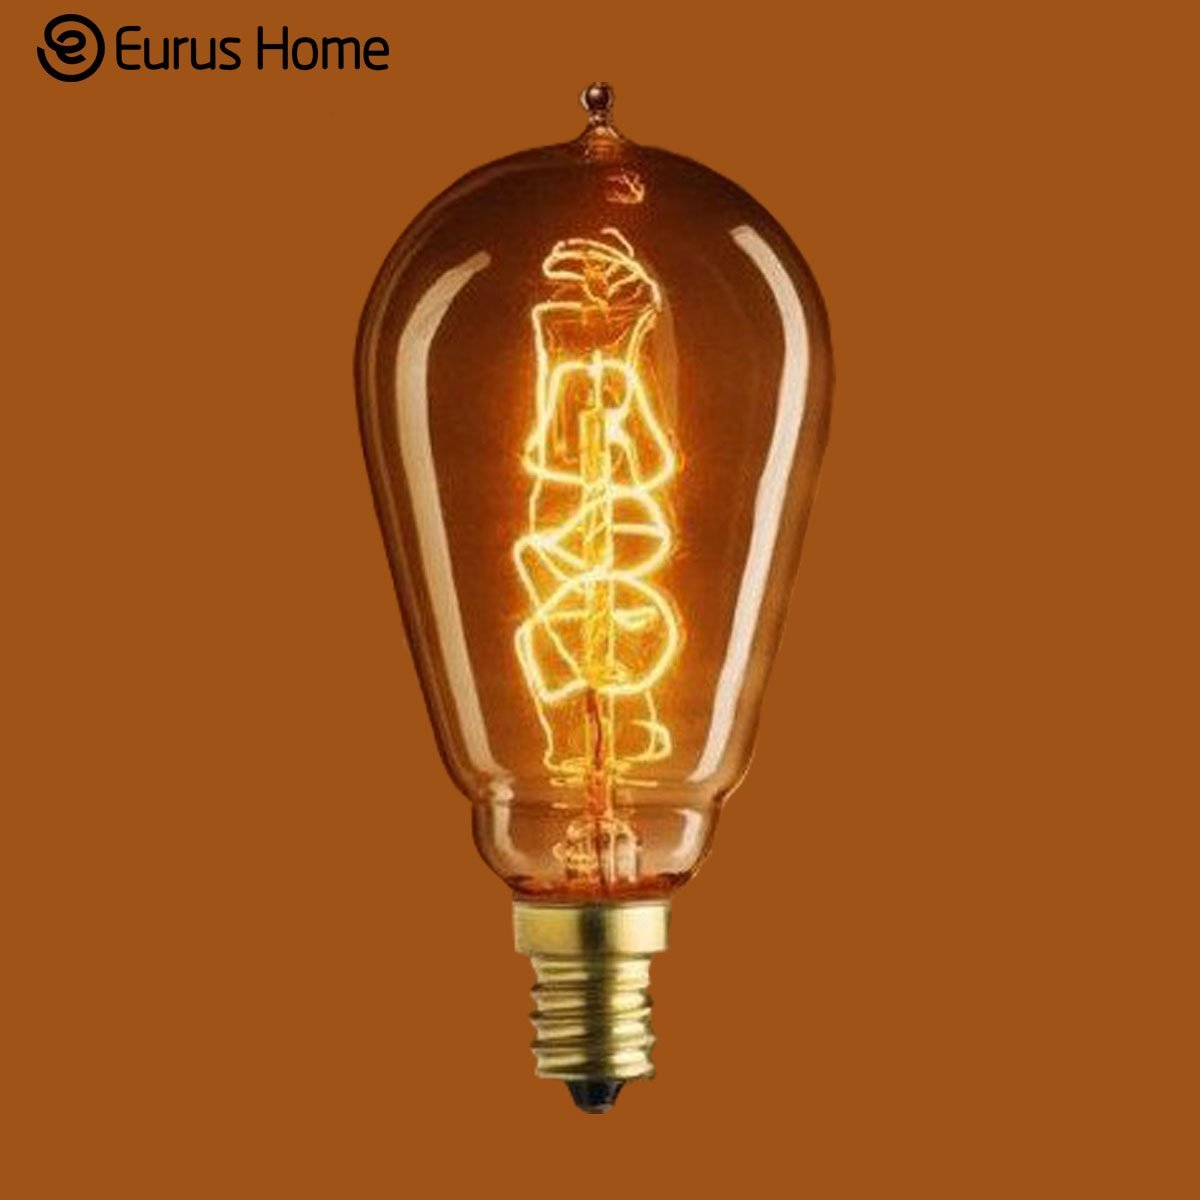 Eurus Home 25 Watt - Vintage Antique Light Bulb - ST15 Edison Style - Candelabra Base - Hand-Wound Spiral Tungsten Filament - Multiple Supports - Clear (1 Pack)